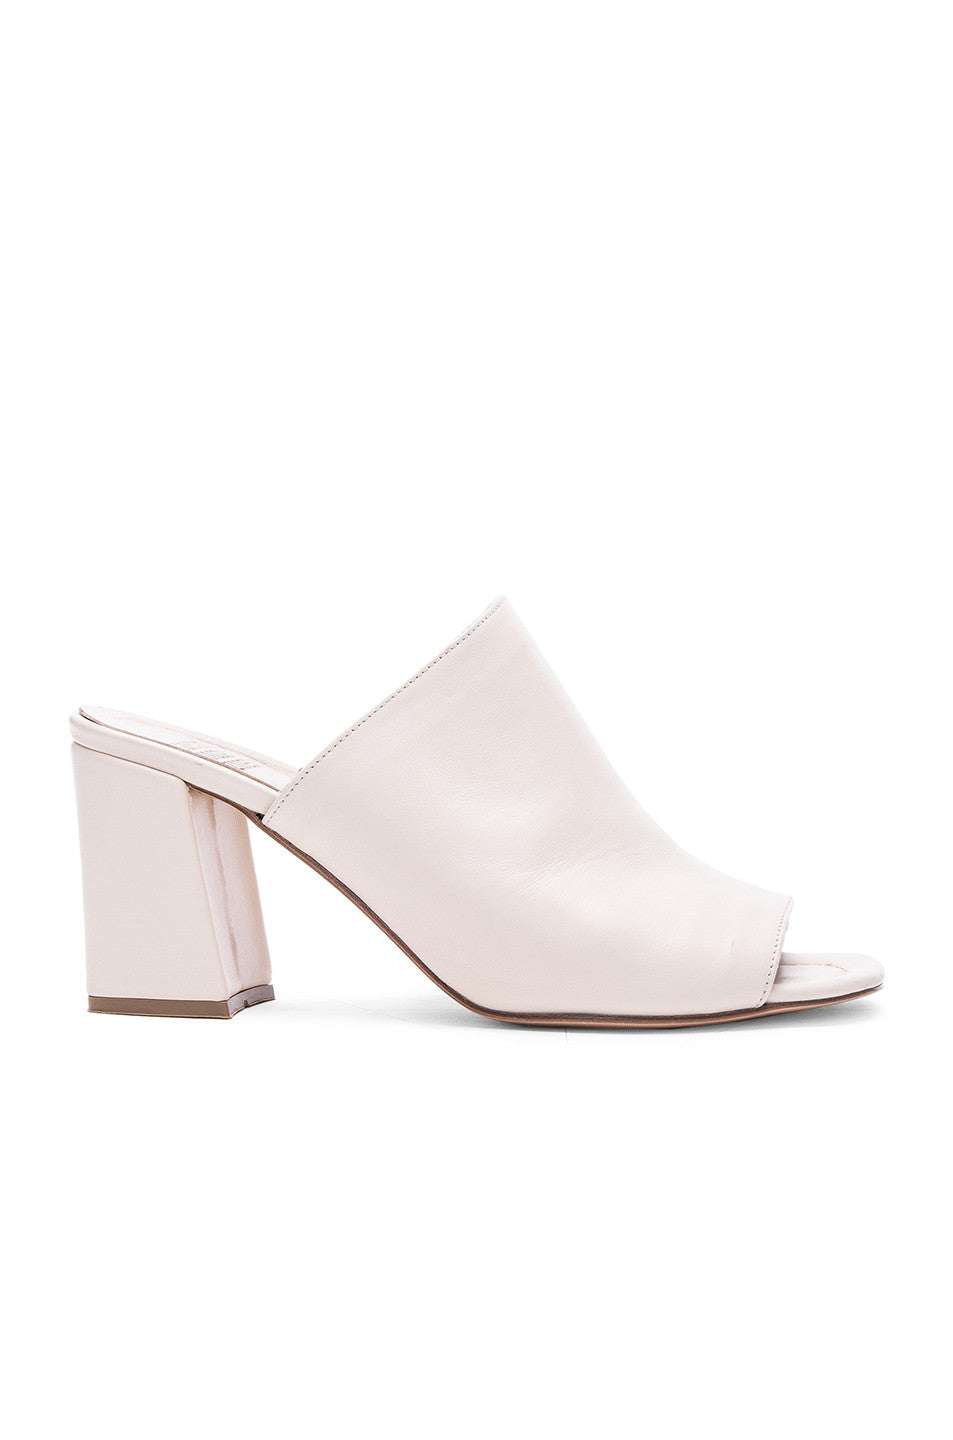 Maryam Nassir Zadeh Penelope Leather Mules